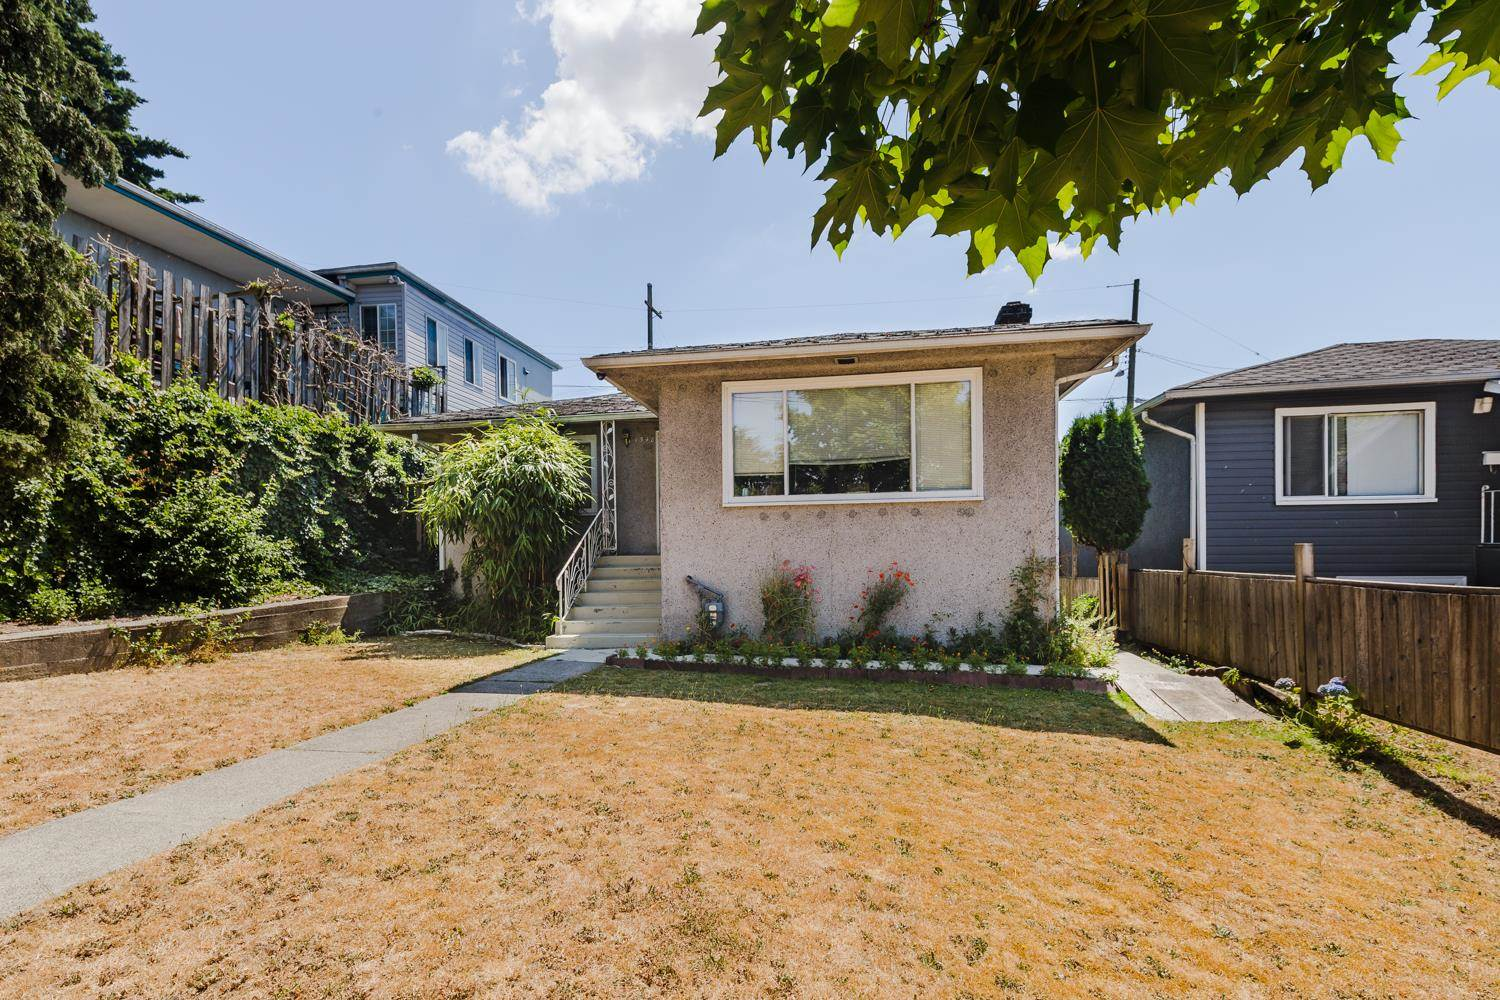 1548 E 41ST AVENUE - Knight House/Single Family for sale, 4 Bedrooms (R2602941) - #1